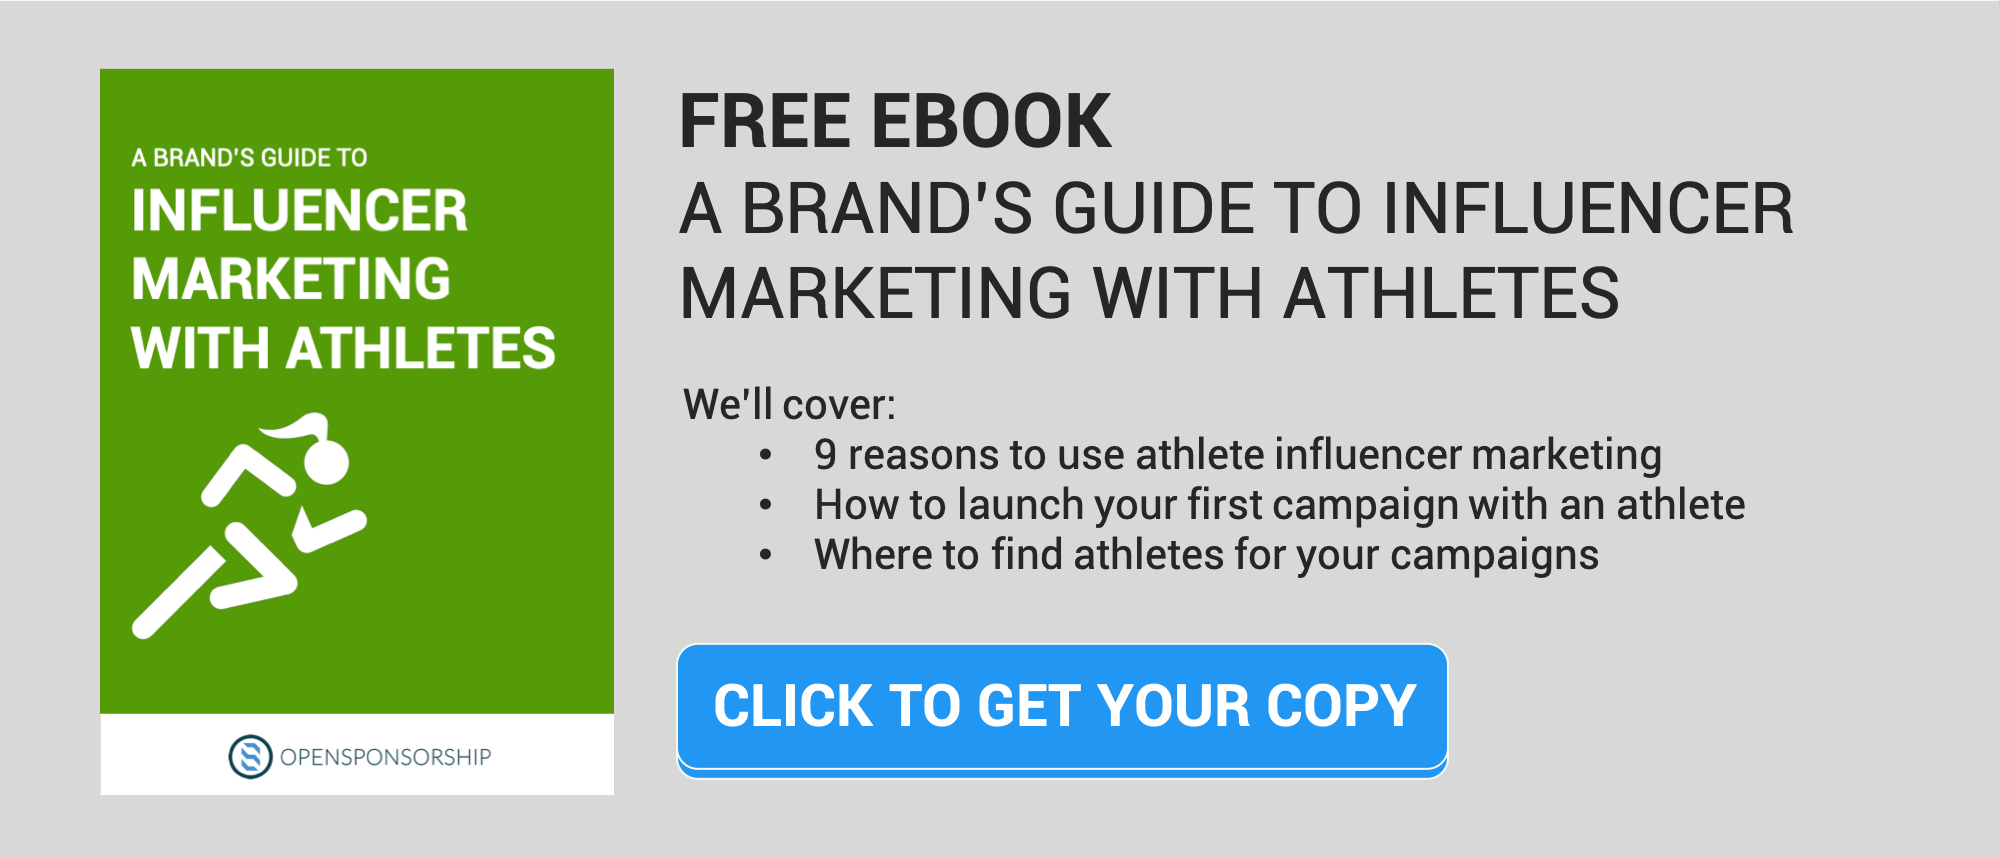 influencer-marketing-athletes-free-ebook